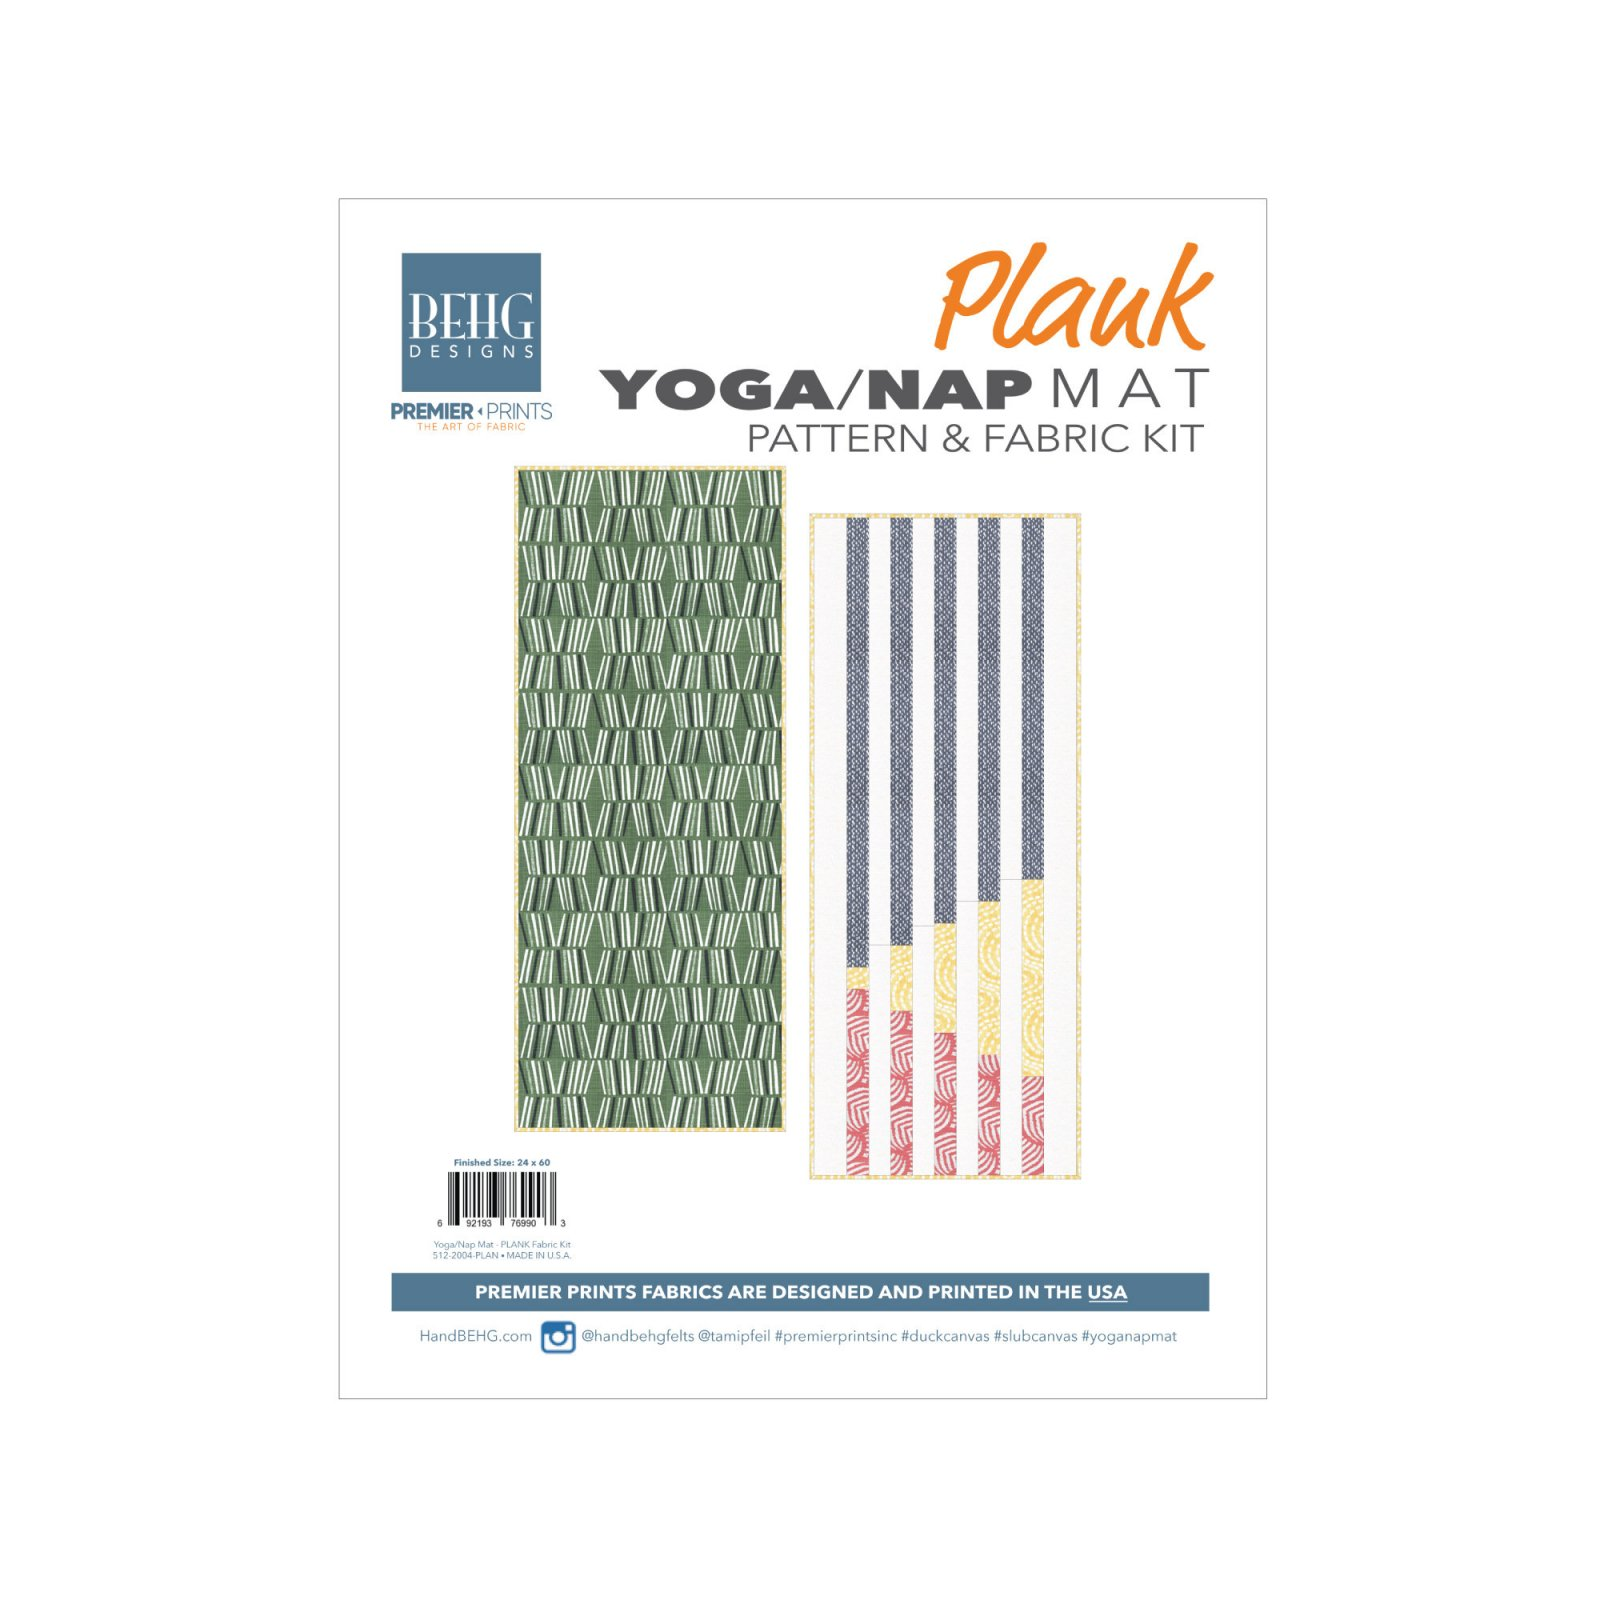 PLANK YOGA/NAP MAT PATTERN & FABRIC KIT